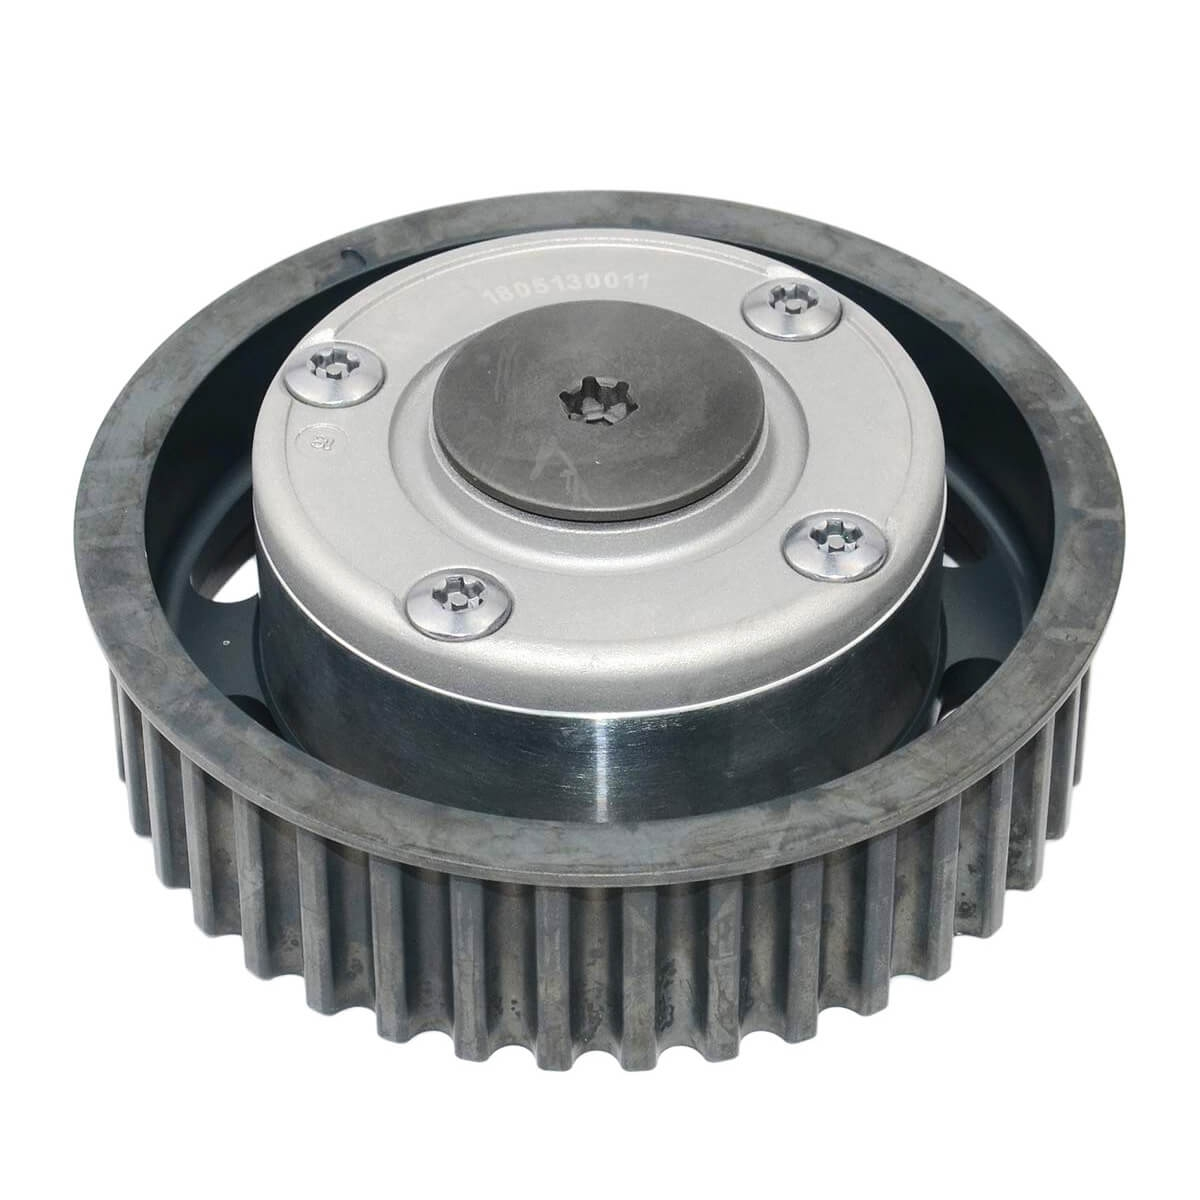 CHRYSLER VOYAGER IV Cam Dephaser Pulley